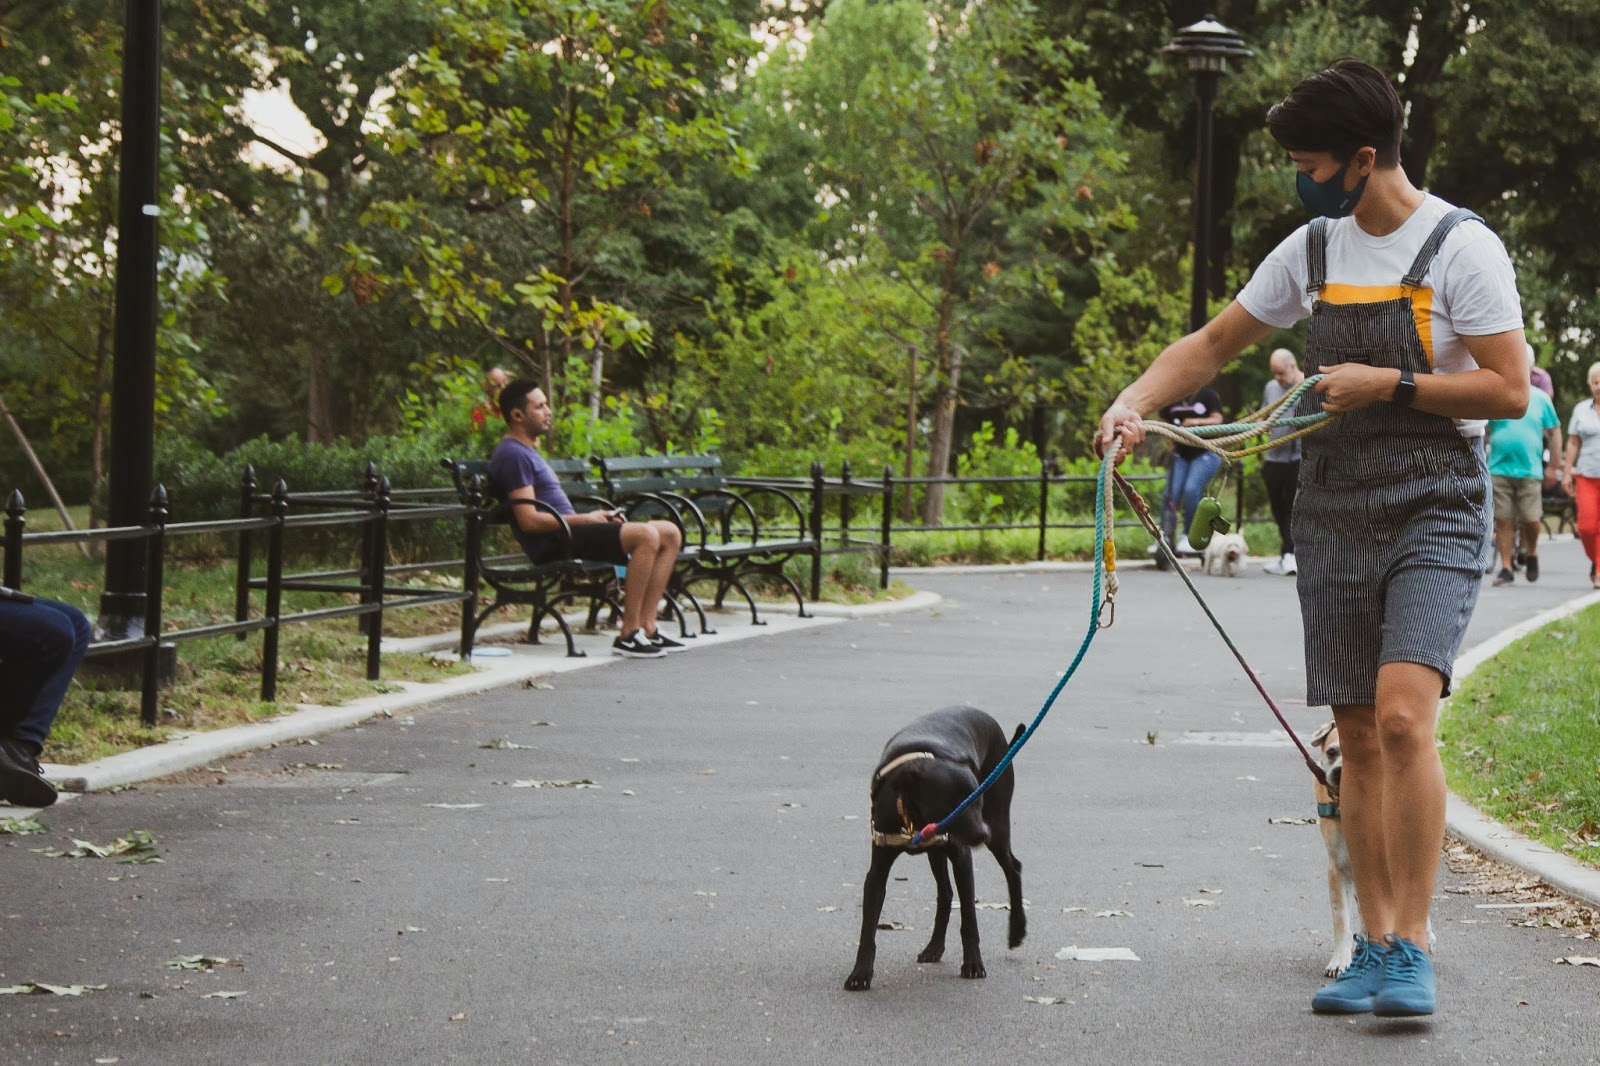 Parks are good places for dog walks and pet care